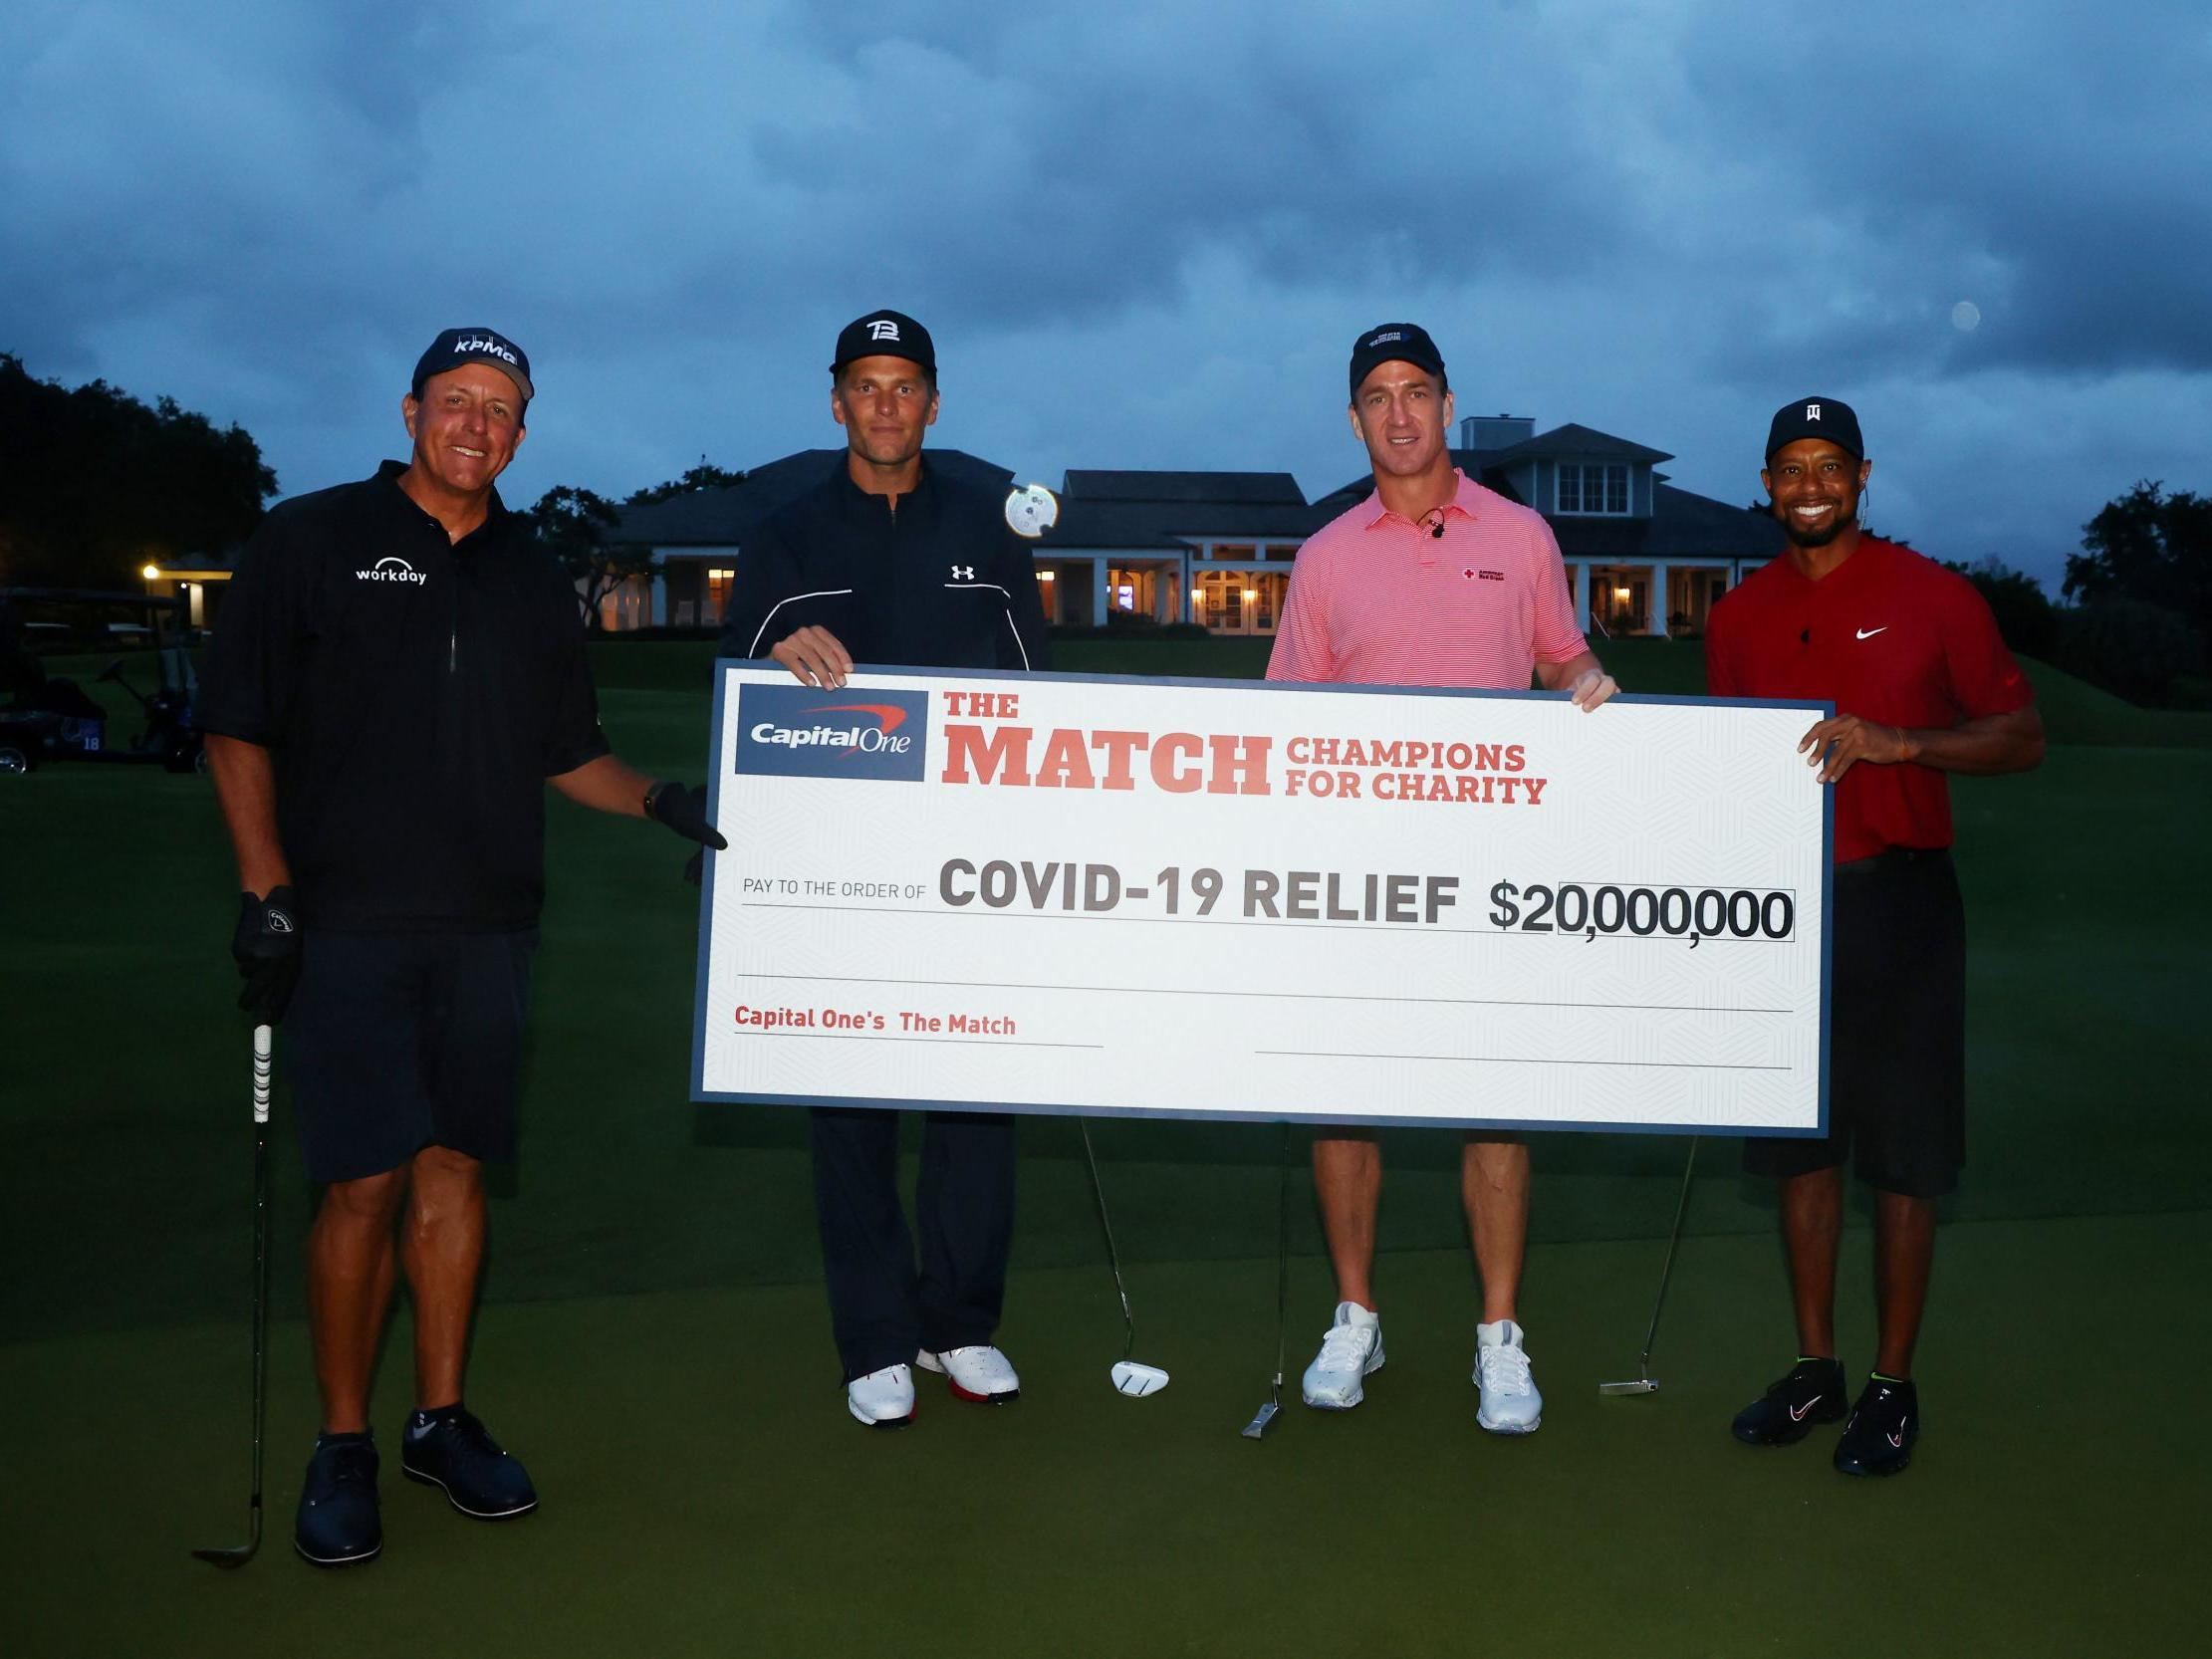 Tiger Woods, Peyton Manning, Phil Mickelson and Tom Brady raise $20million with charity golf match